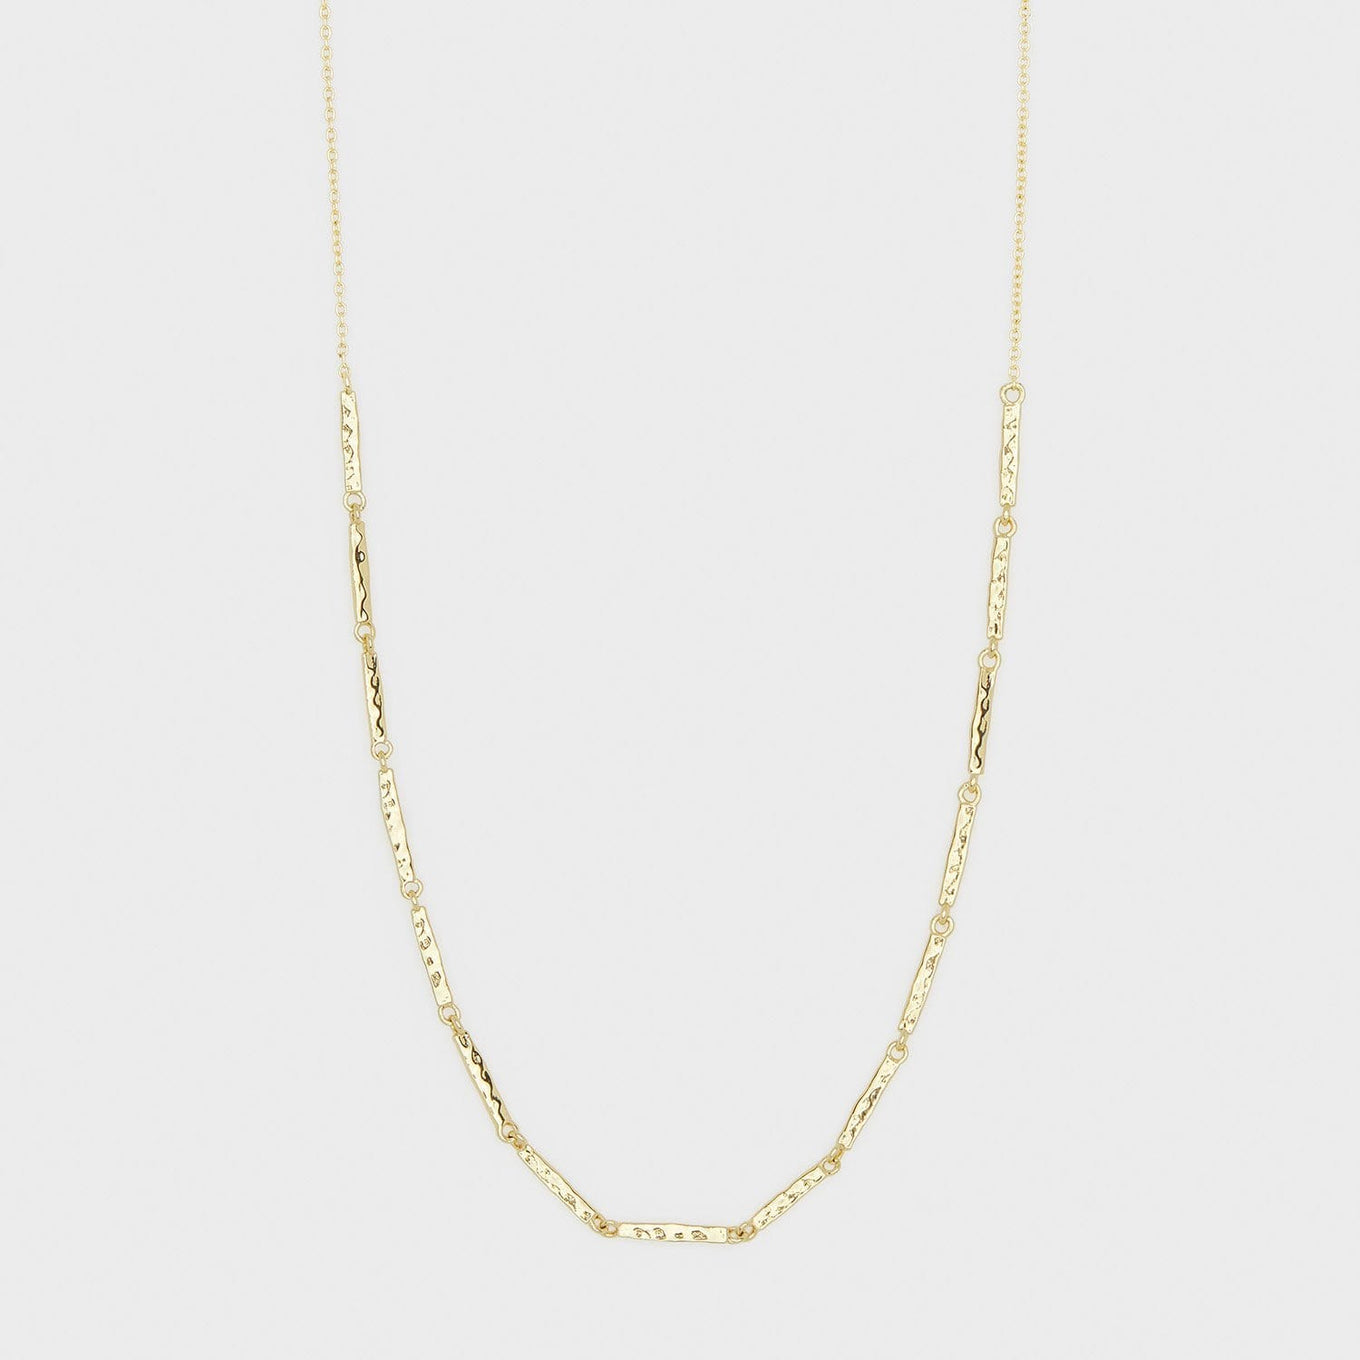 gorjana jewelry gold bar necklace, Balboa Bar Necklace